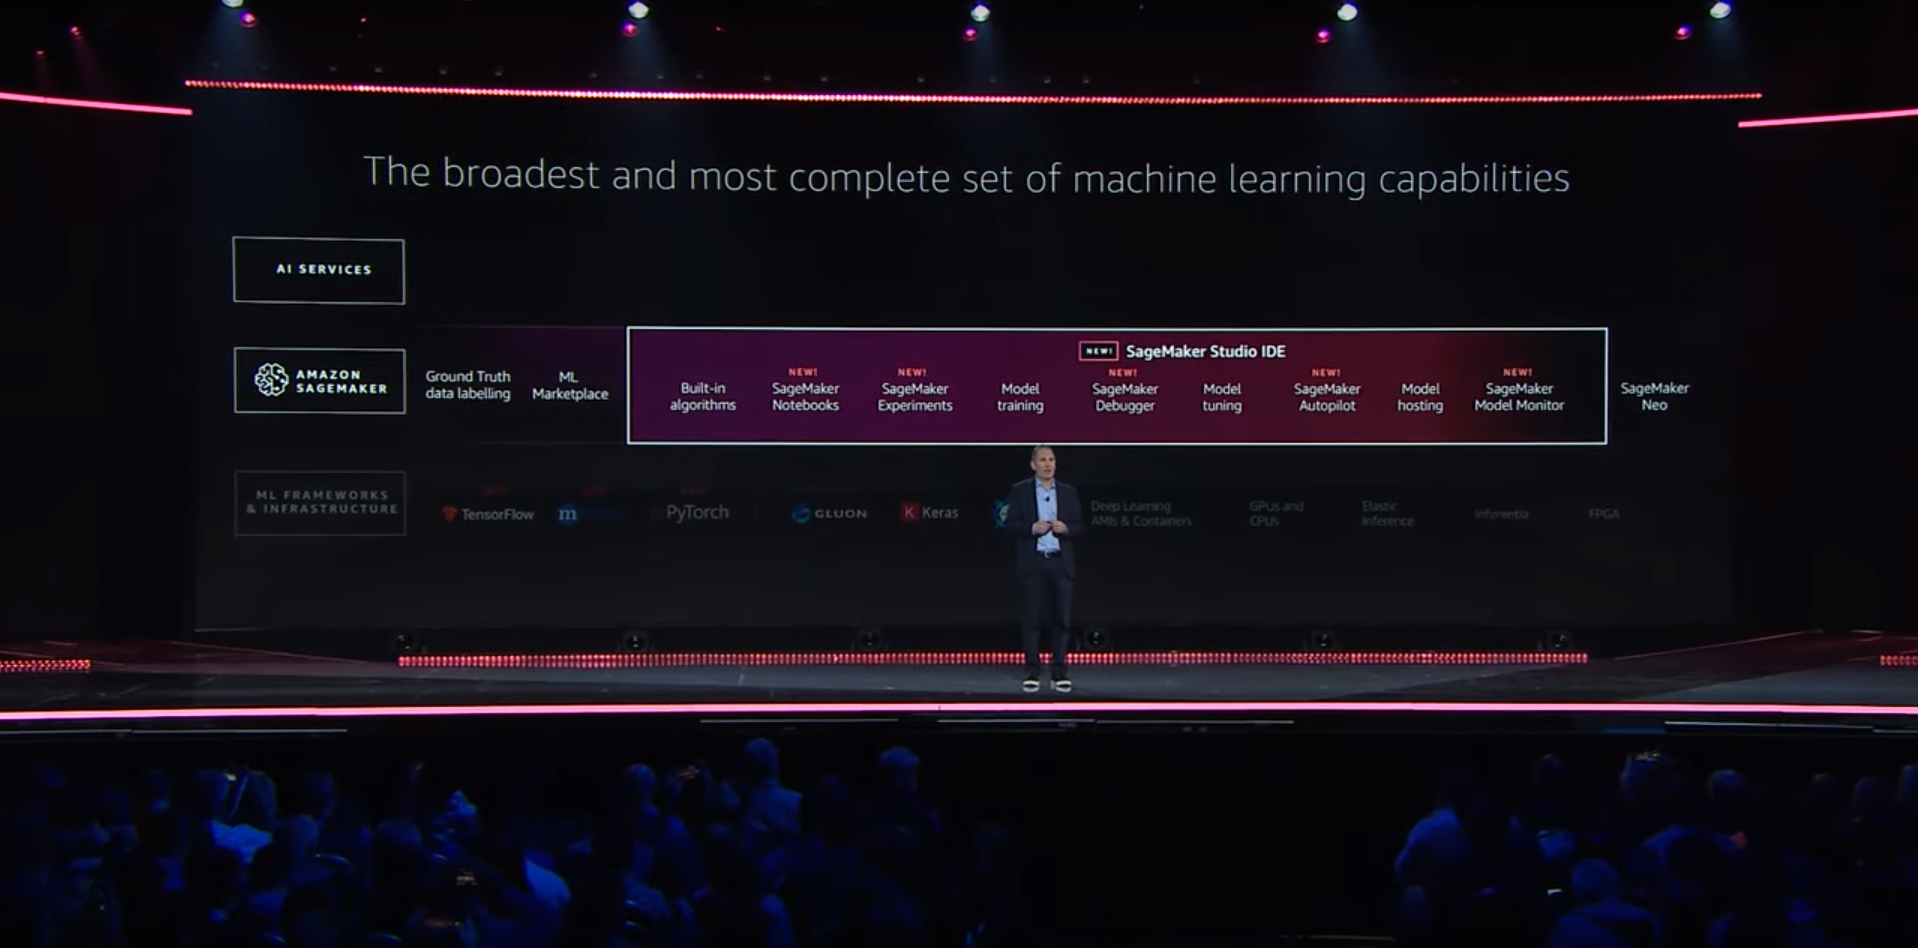 AWS CEO Andy Jassy explaining new SageMaker features at AWS re:Invent 2019